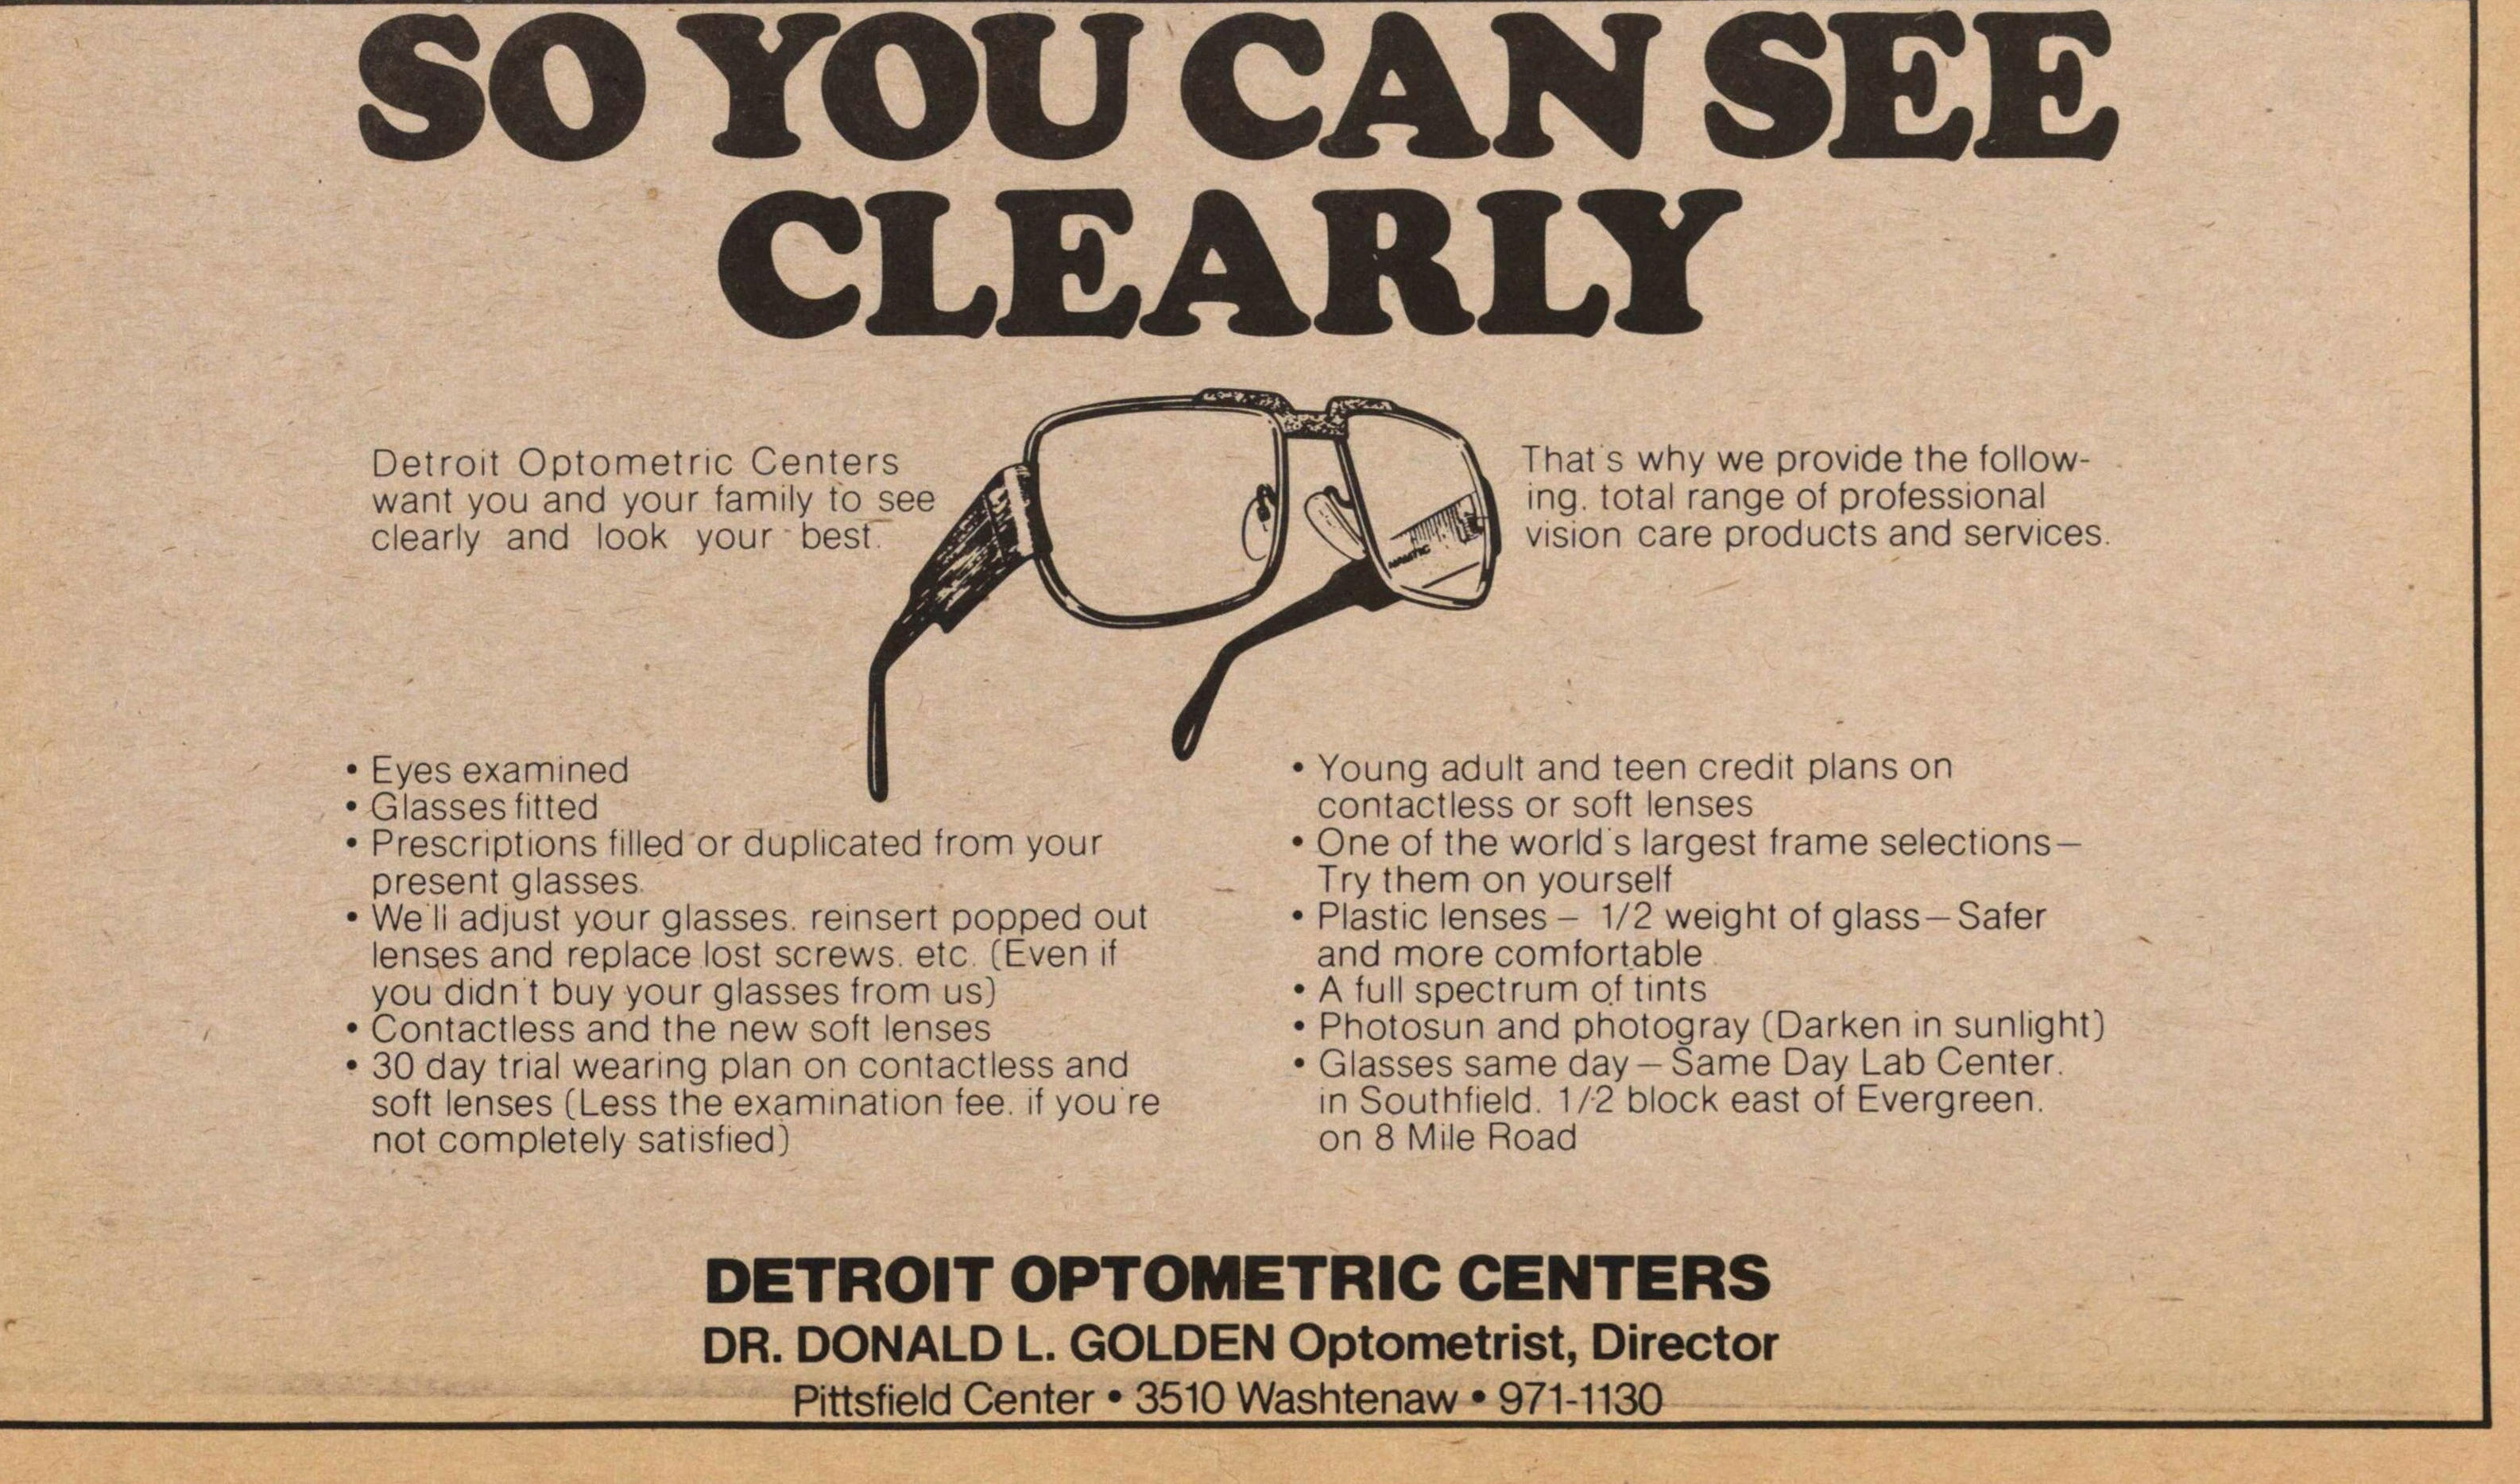 Detroit Optometric Centers image